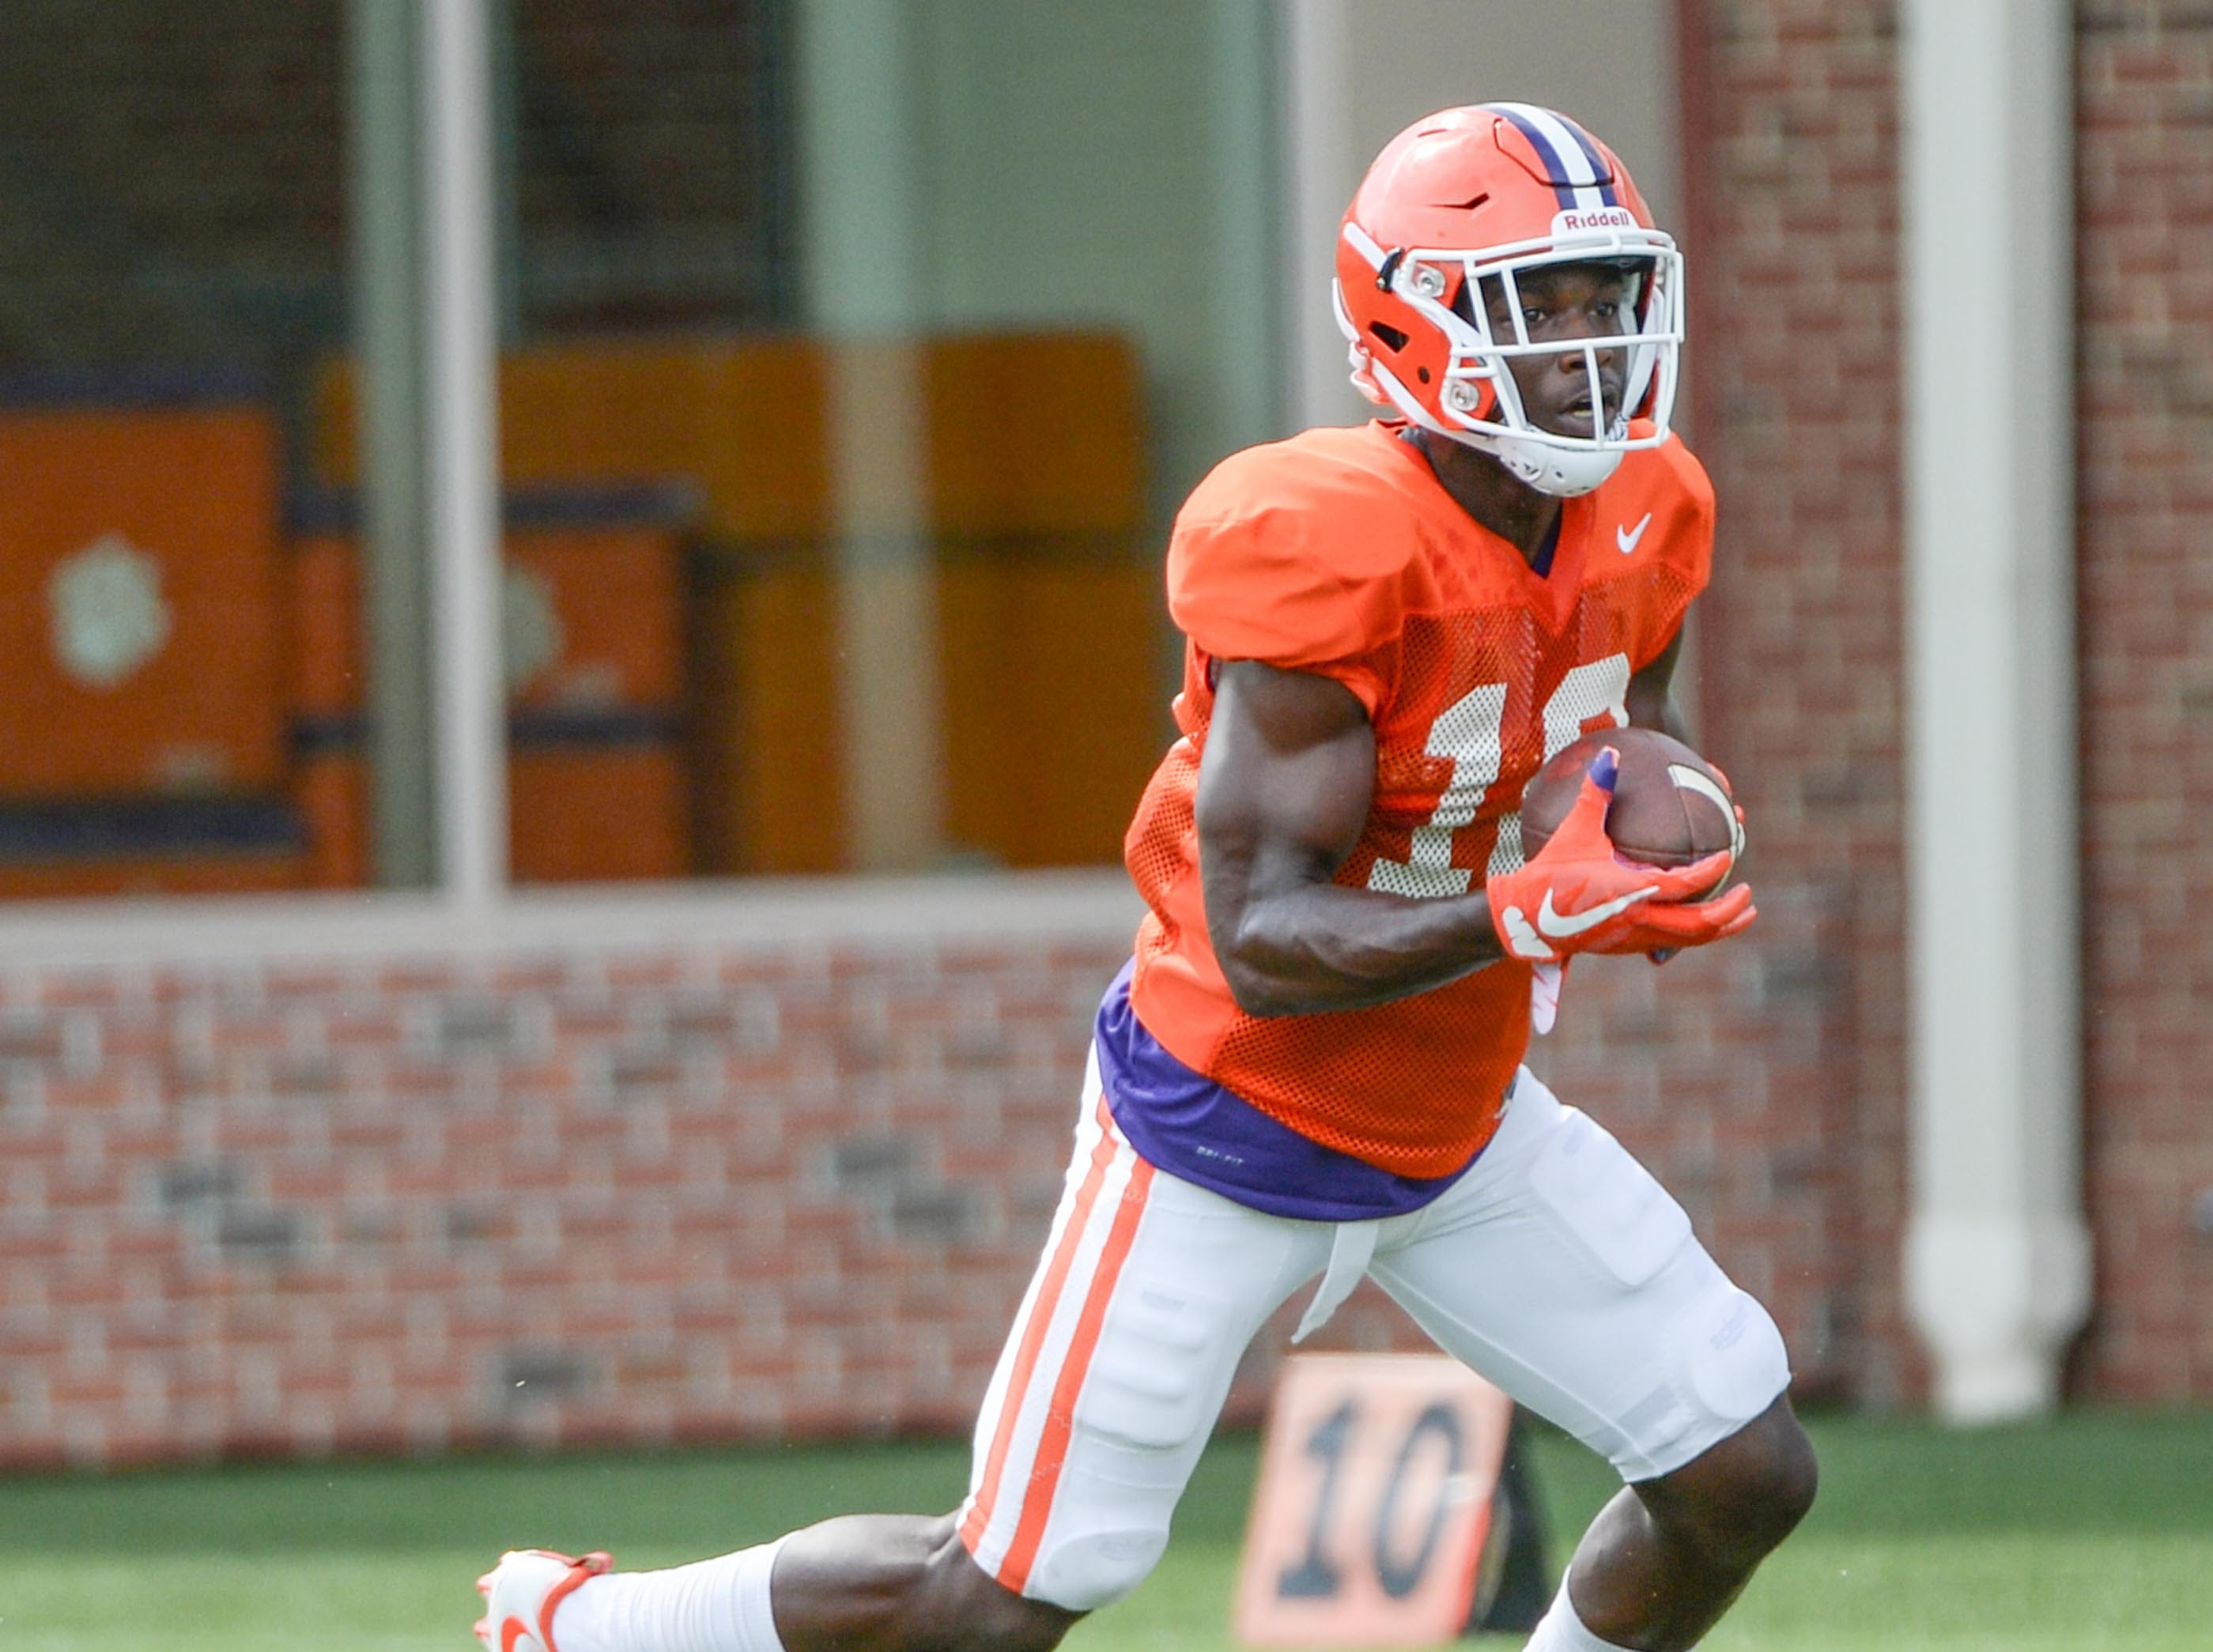 Clemson wide receiver Derion Kendrick (10) during fall practice in Clemson on Wednesday.